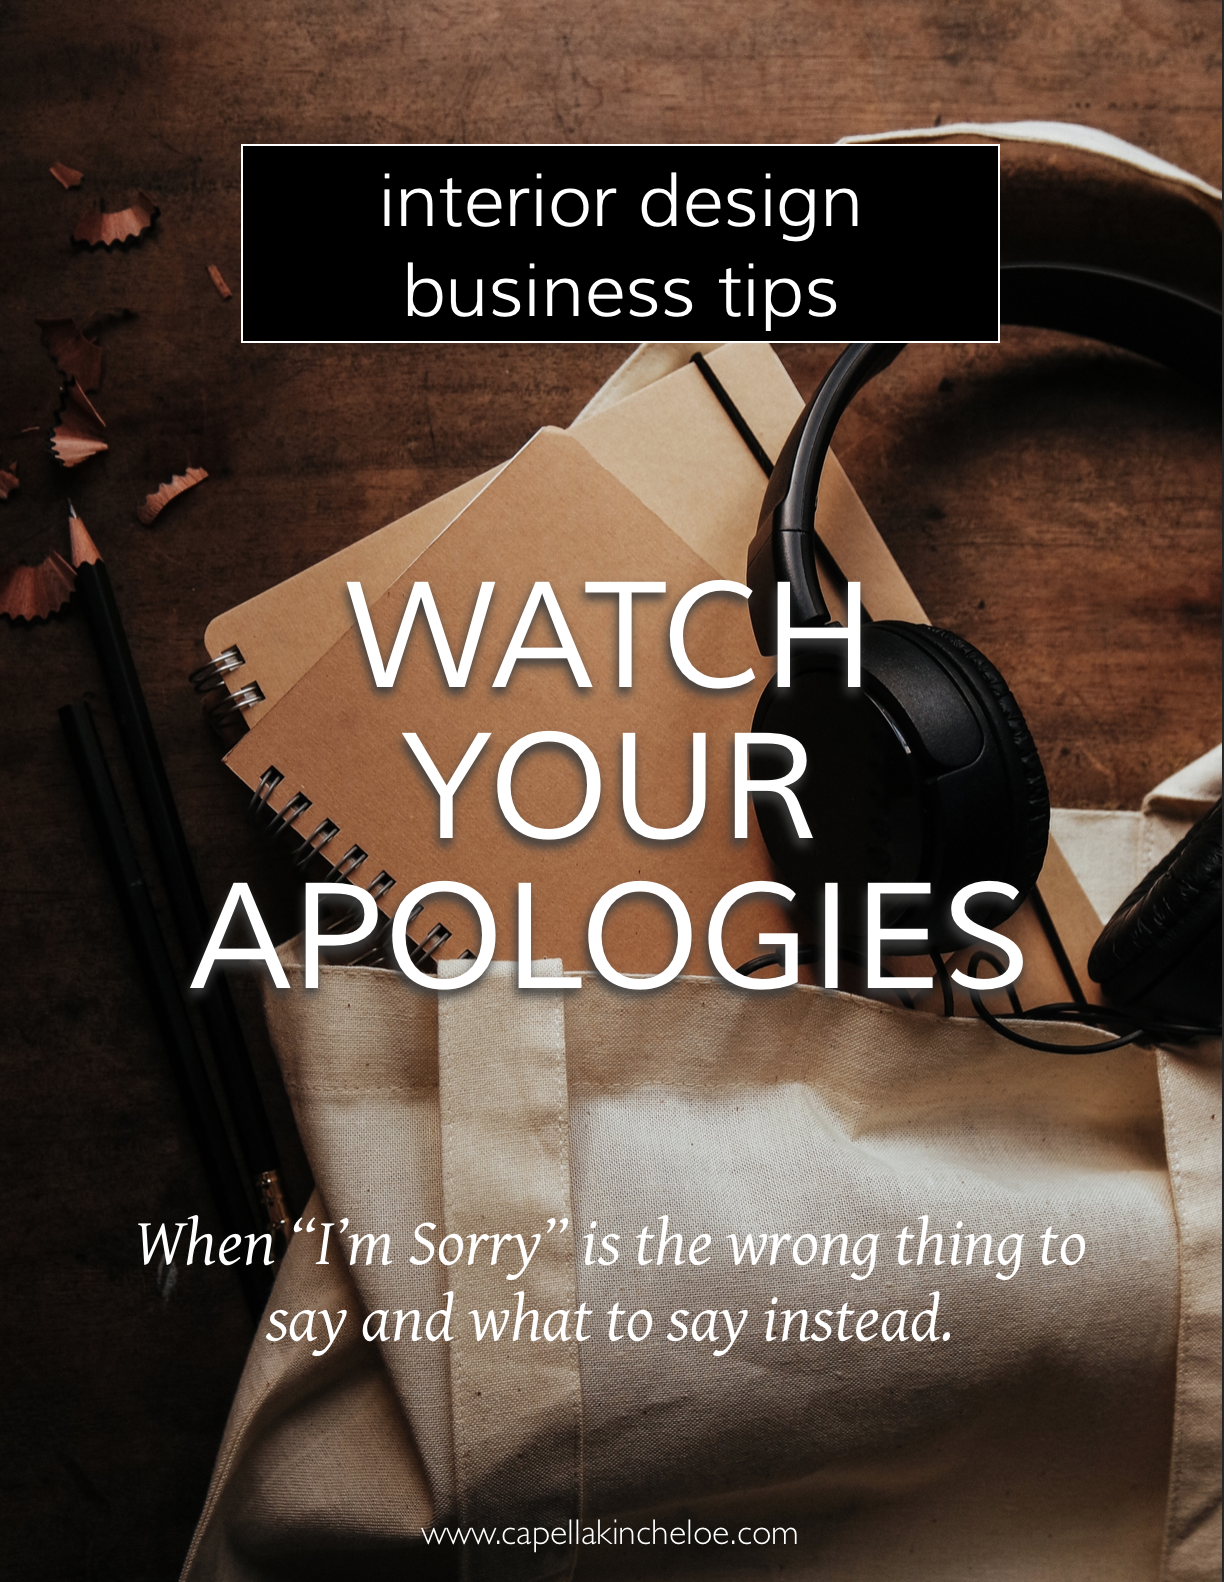 We all apologize too much and it can actually have the wrong effect - making people feel worse. Watch you apologies and do this instead. #interiordesignBusiness #CKtradesecrets #INTERIORDESIGNCEO